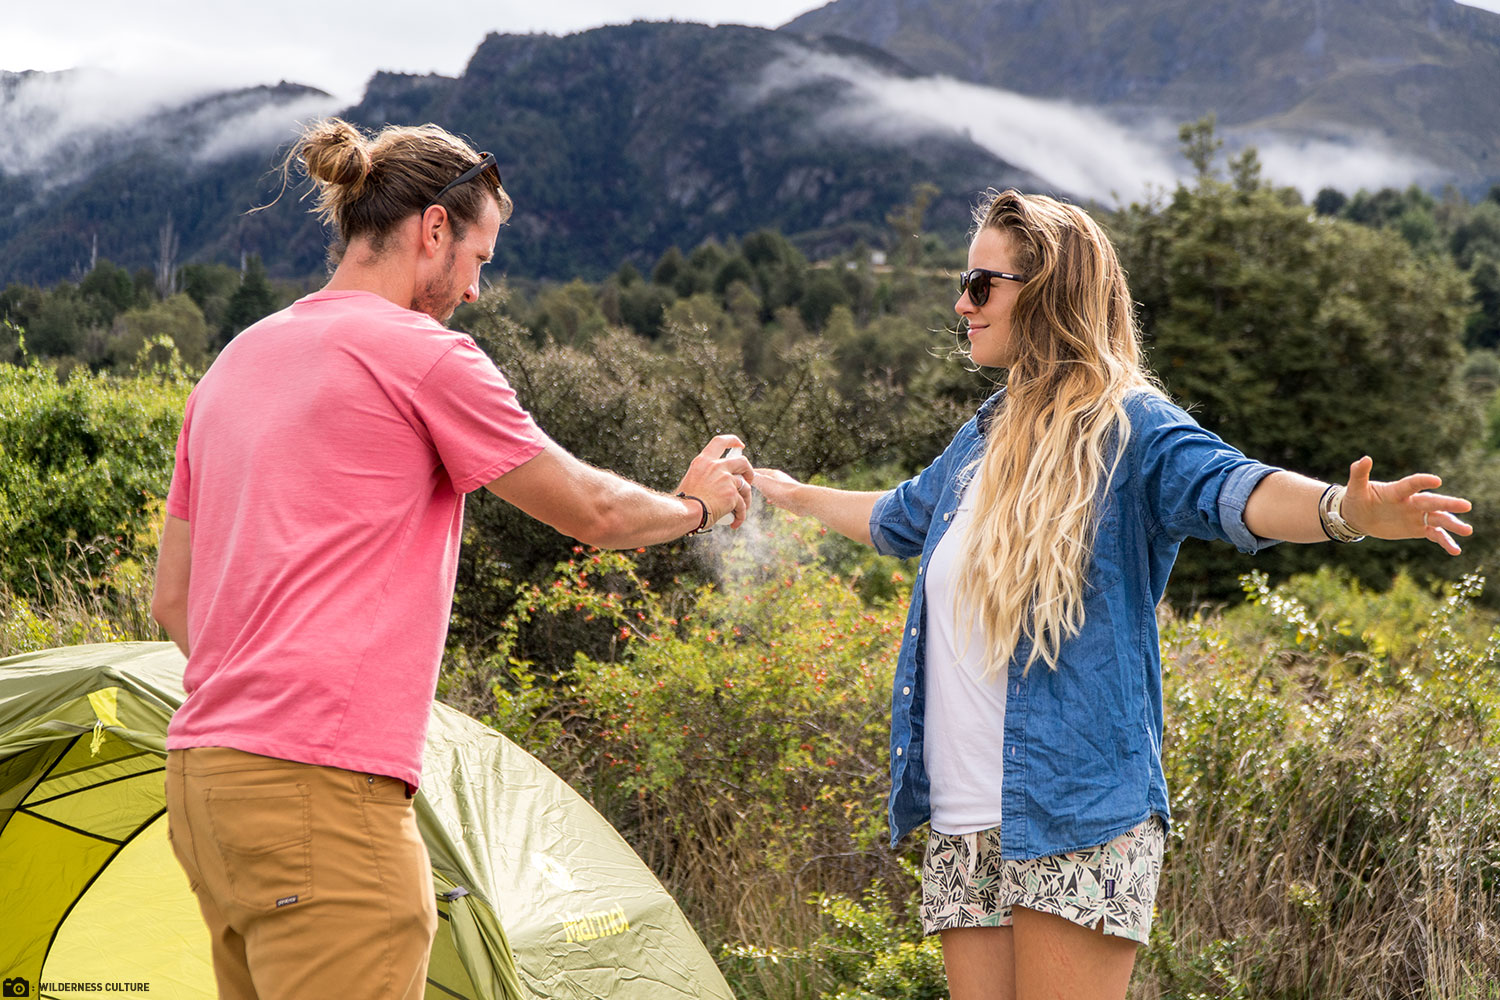 A Gentleman Applies Sawyer MAXI DEET Insect Repellent Spray to His Camping Partner